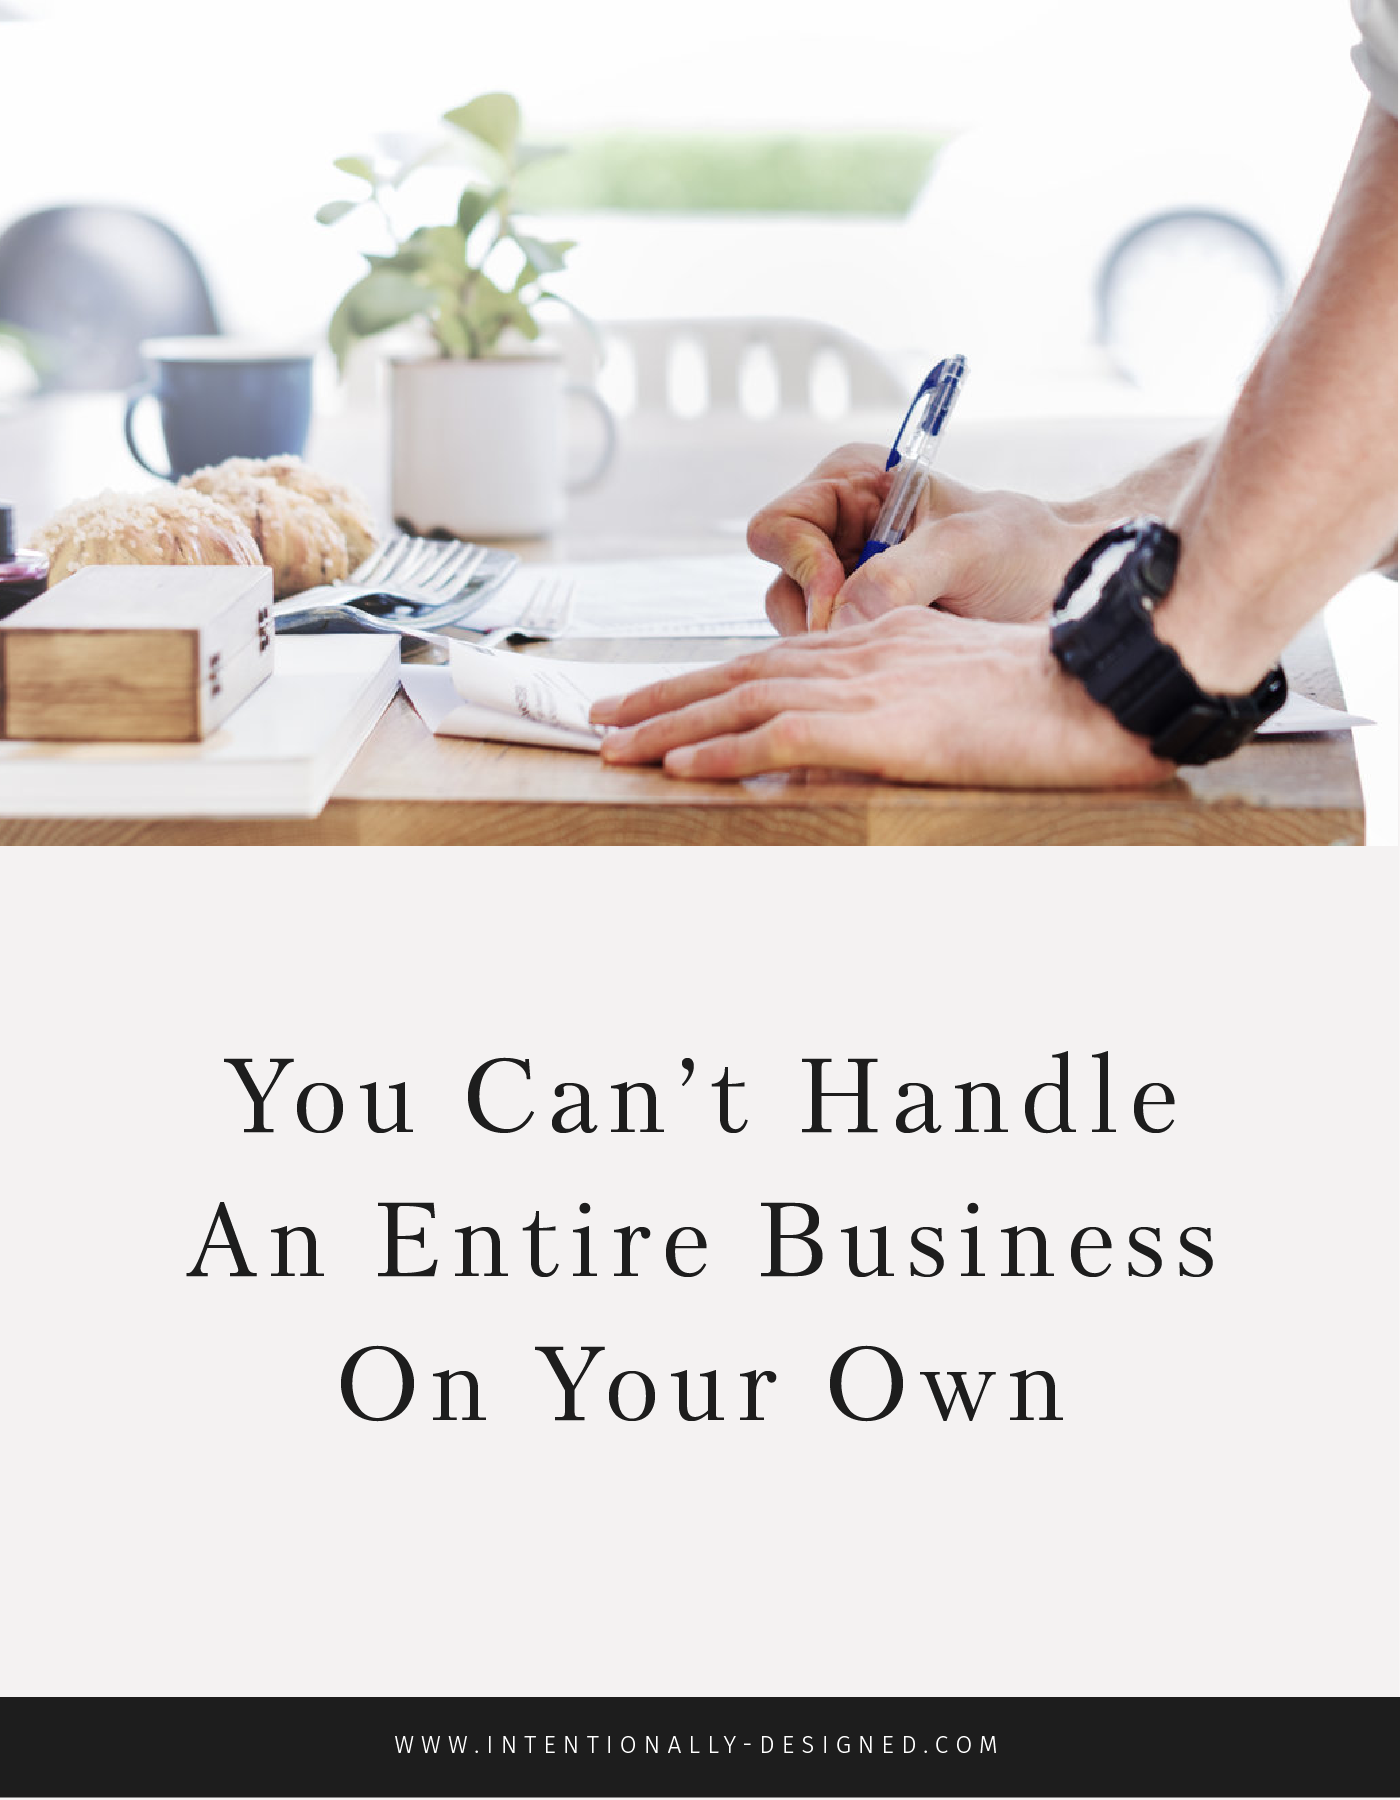 You Can't Handle An Entire Business On Your Own!